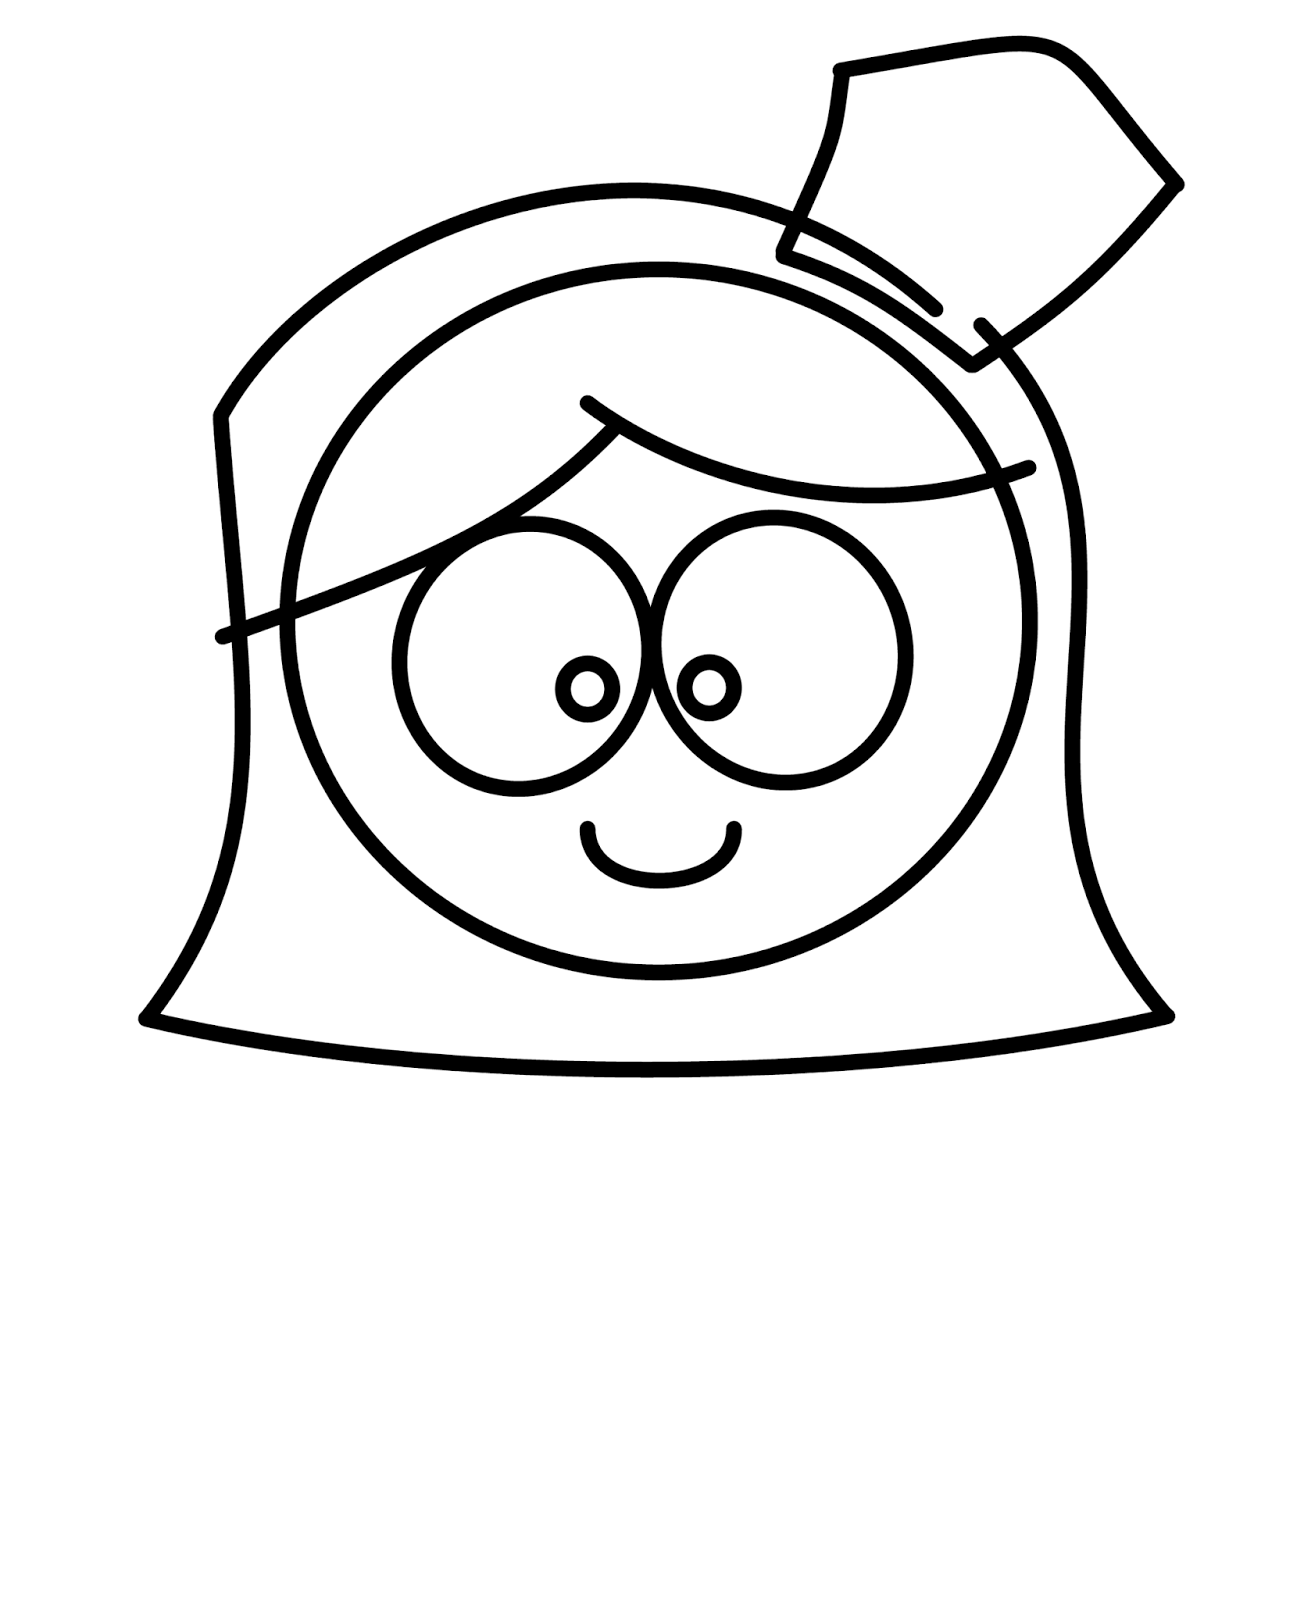 Nurse cap coloring pages ~ Nurse Cap Drawing at GetDrawings.com | Free for personal ...